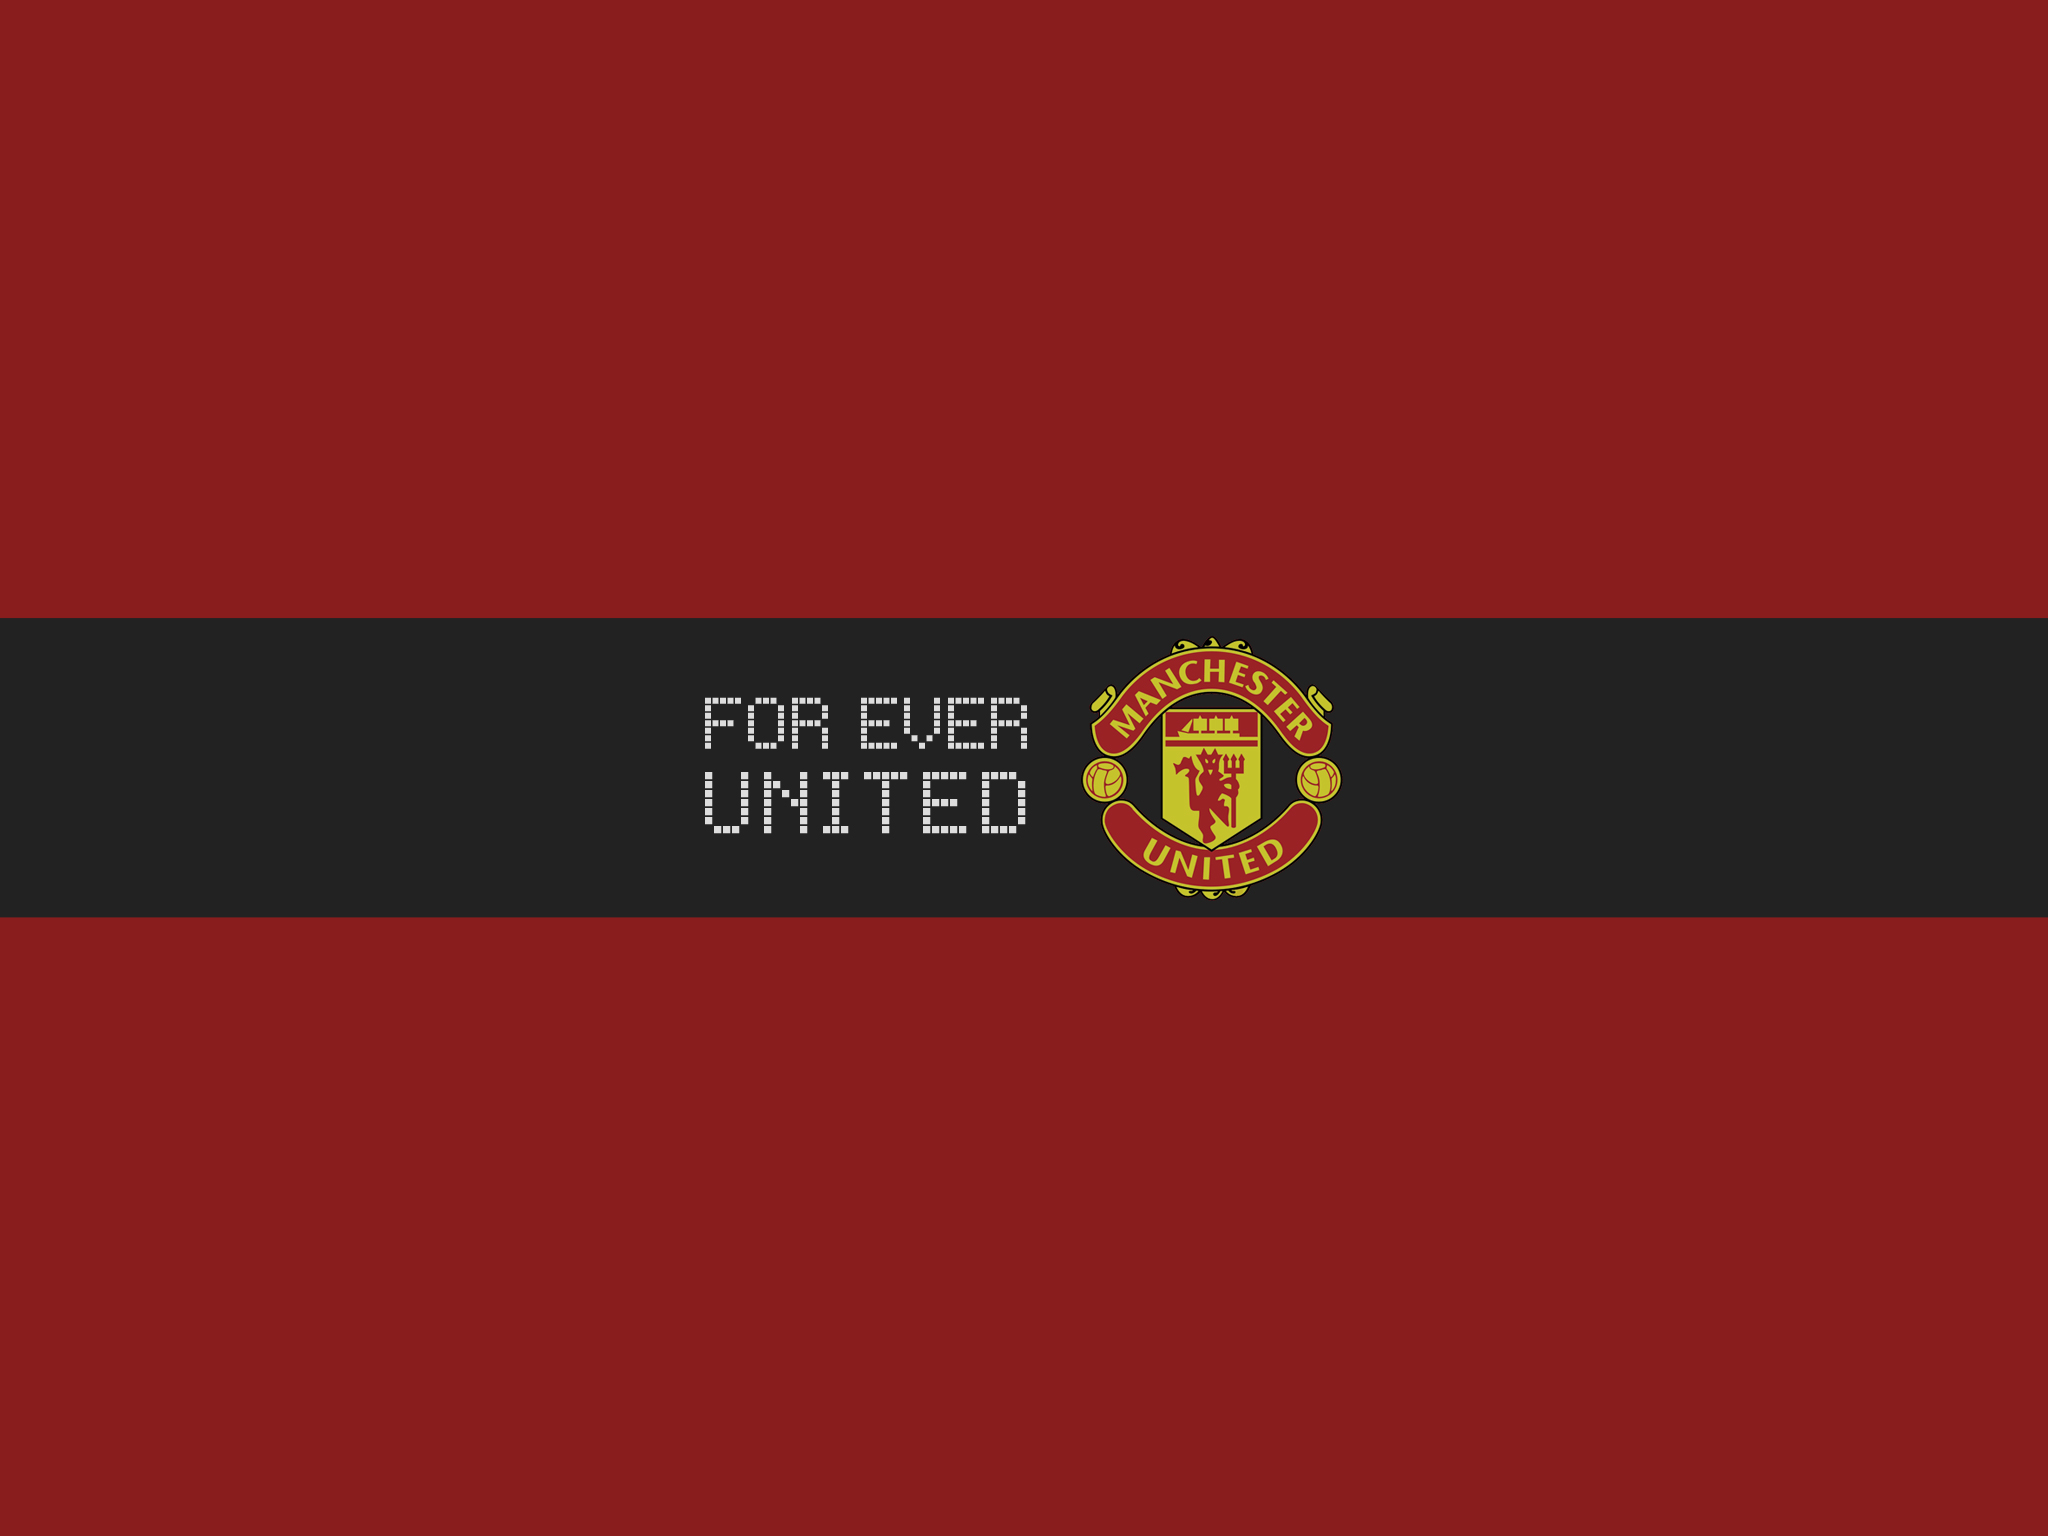 Hd wallpaper manchester united - Hd Wallpaper Manchester United 55